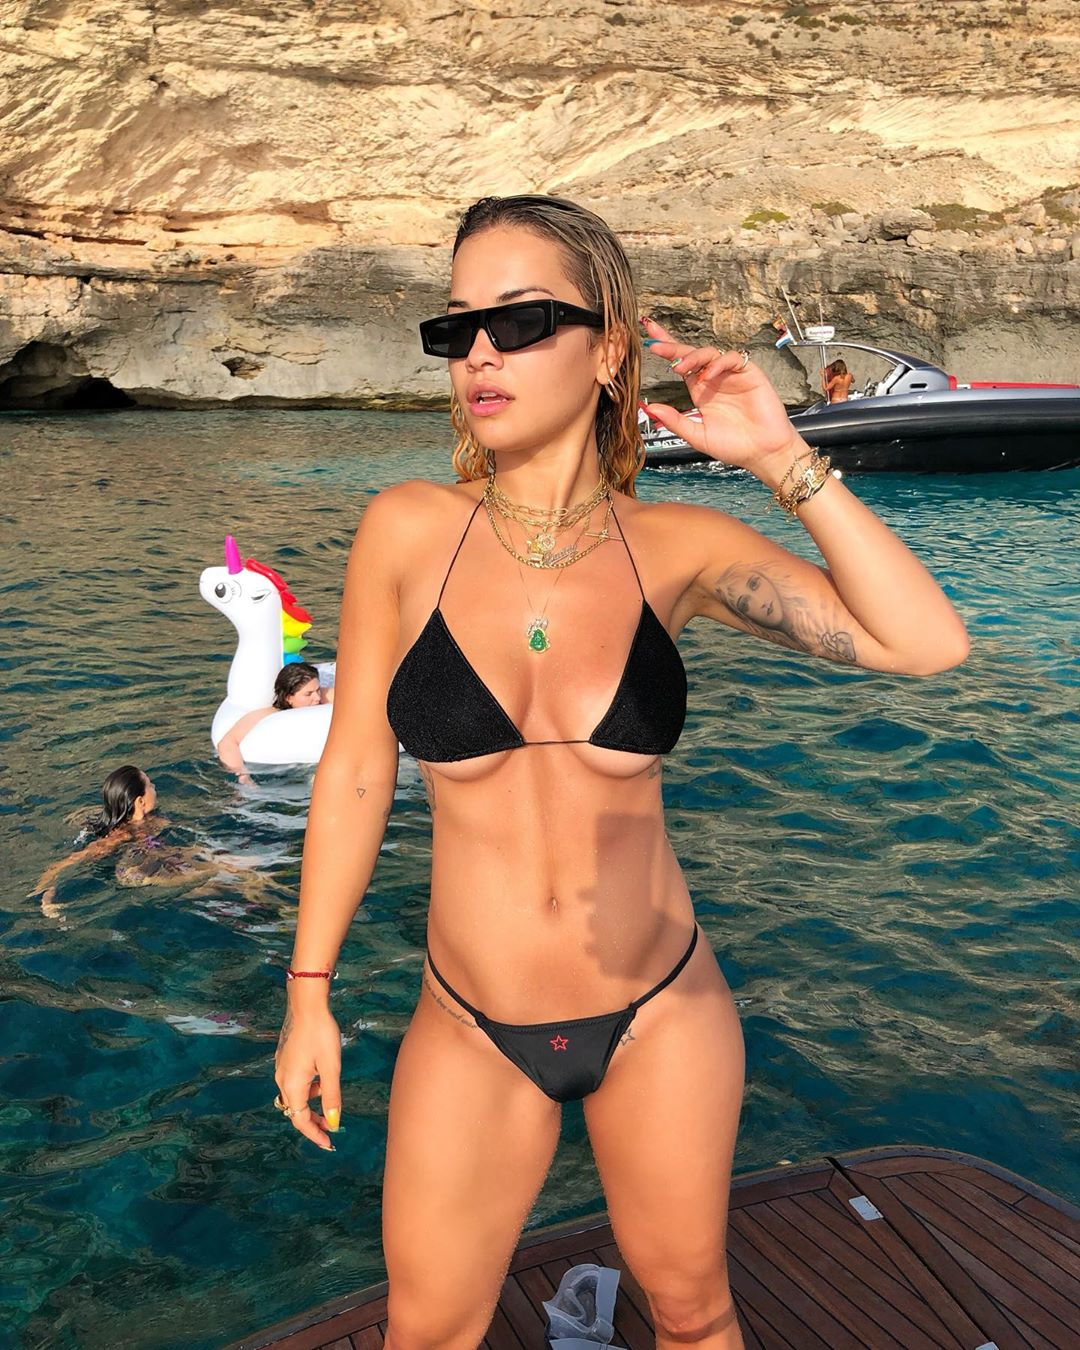 Rita Ora Hot Black Bikini Pose - Rita Ora Hot Black Bikini Pose